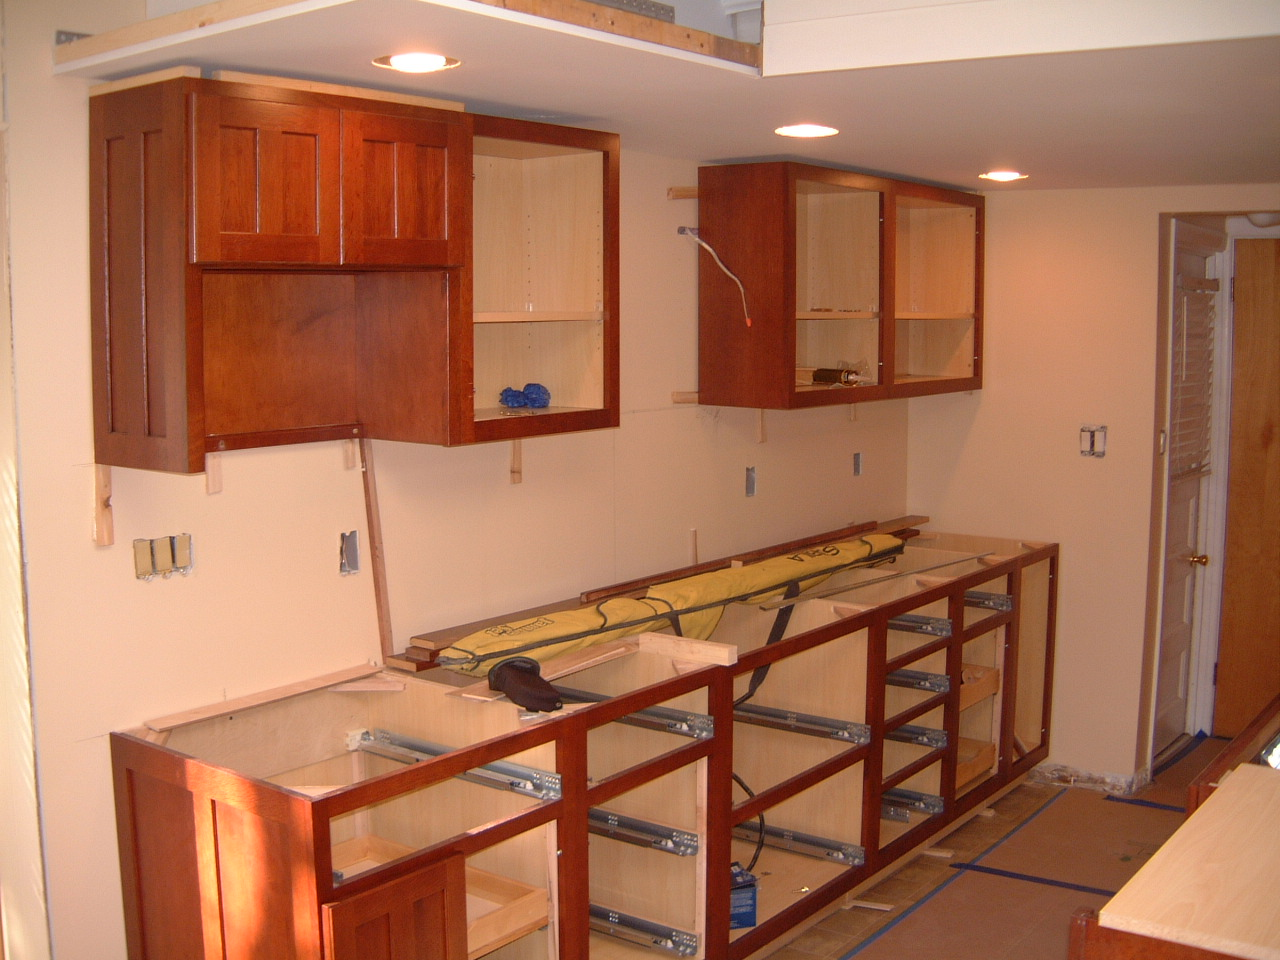 Springfield Kitchen Cabinet Install Remodeling Designs Inc